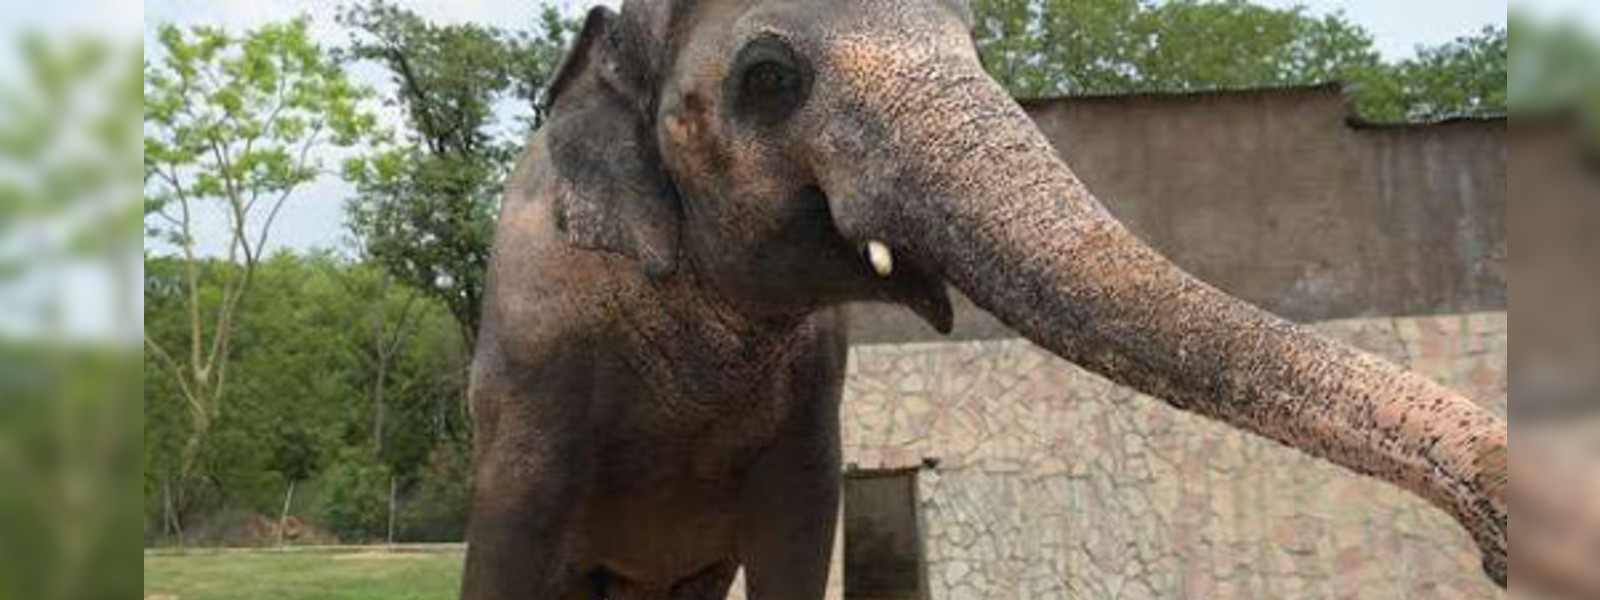 Lonely Sri Lankan Elephant Kaavan, to be released from Islamabad zoo under court order.